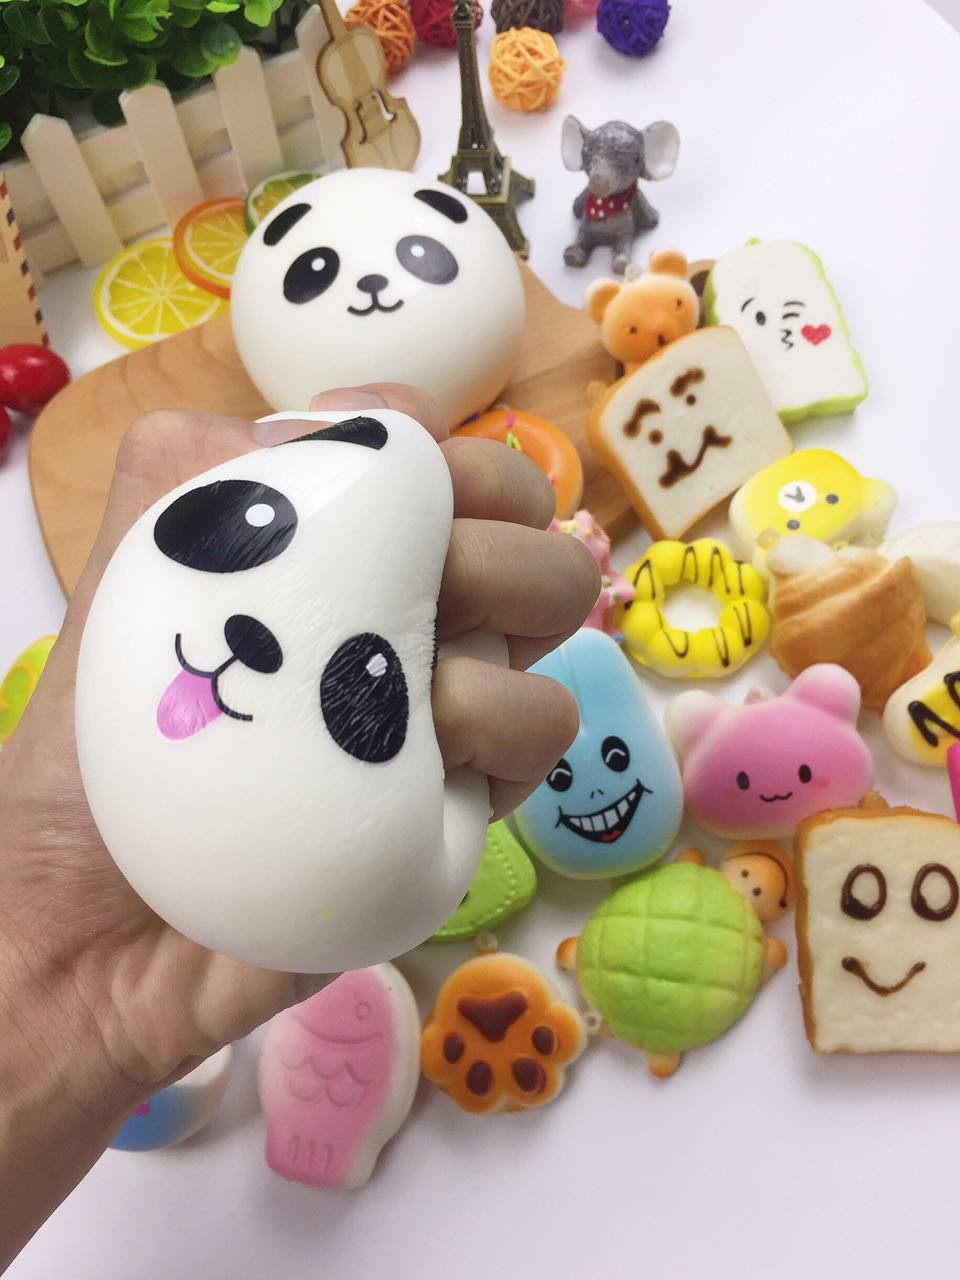 60pcs Jumbo medium mini pack slow rising cheap squishies kawaii Stress Relief collection gift squishy toy by Originnt (Image #6)